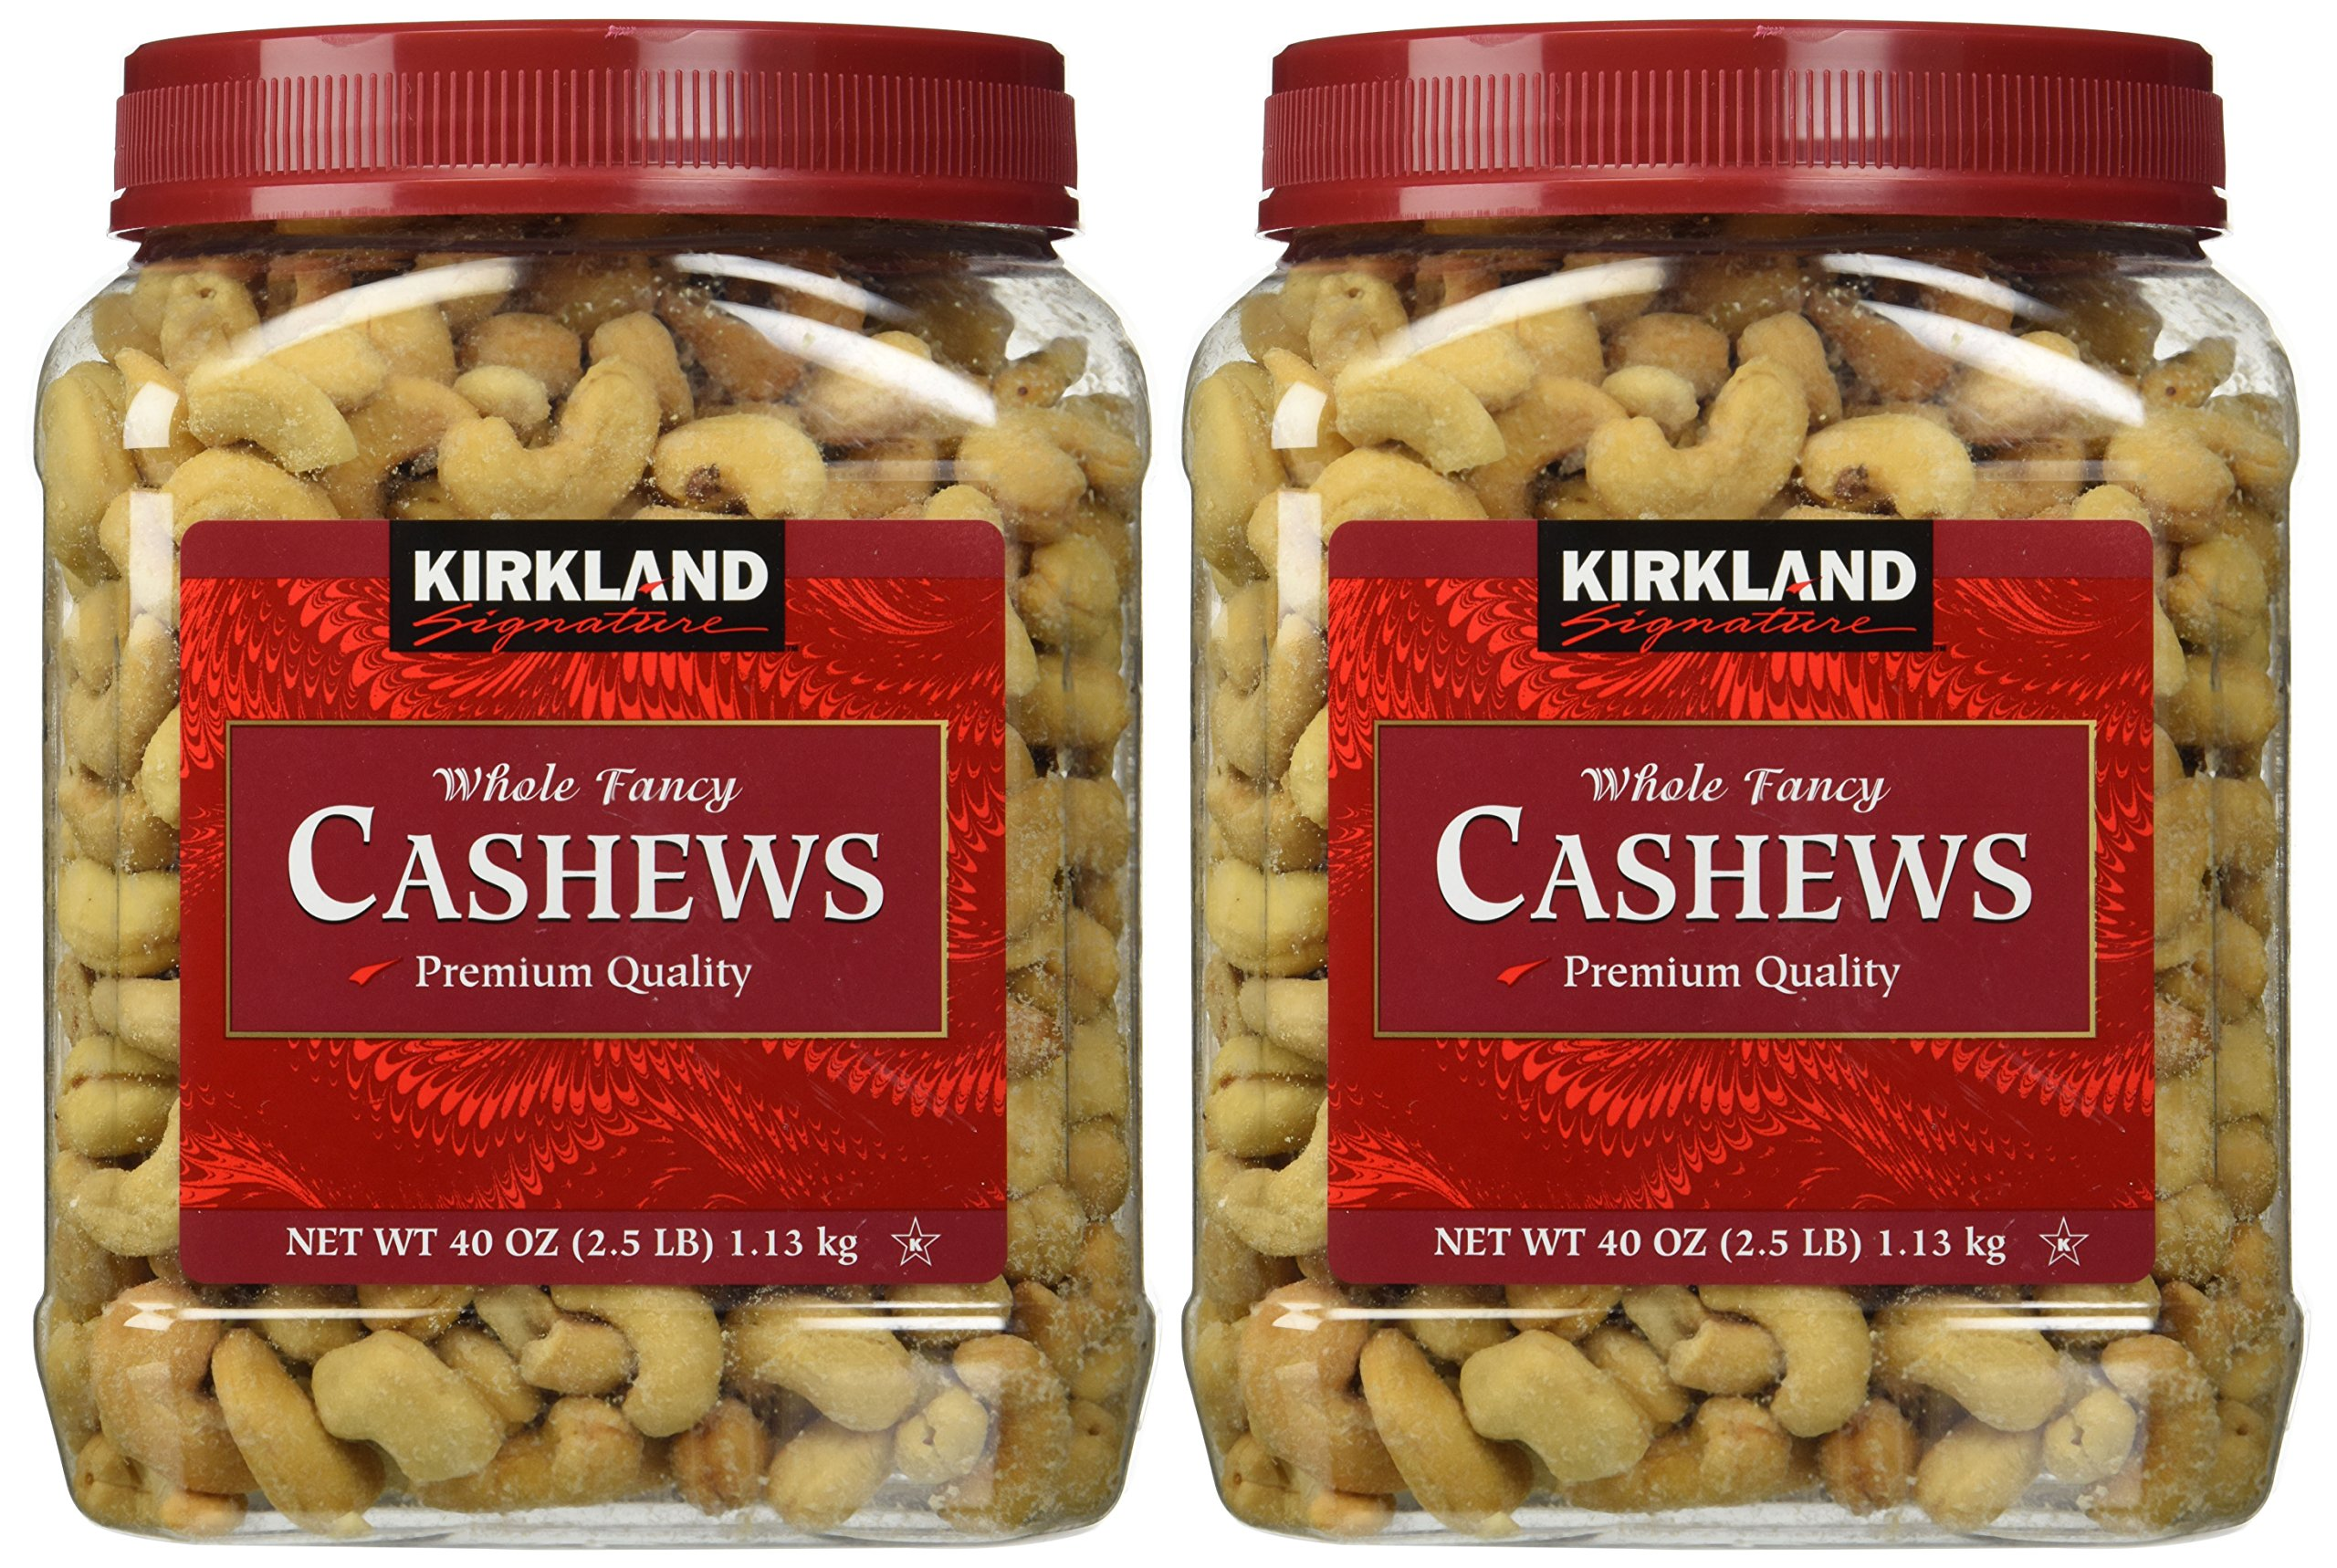 Kirkland Signature Whole Cashews 2-pack Two 2.5 lb. Jars, Fancy Grade Mother's Day Gift